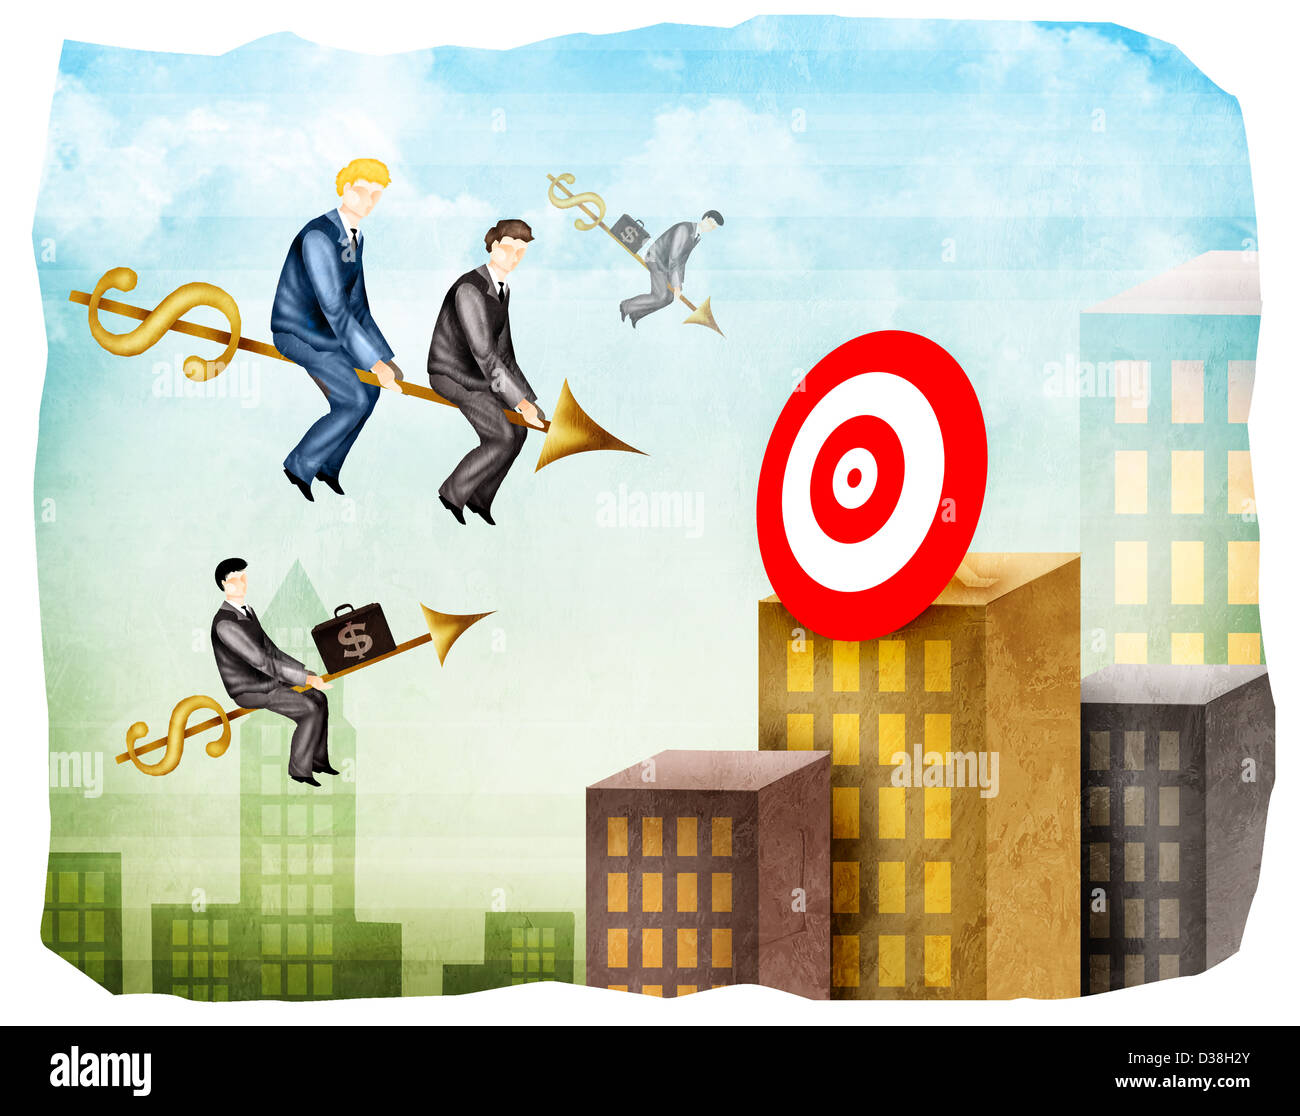 Sales executives reaching towards a target on arrows - Stock Image